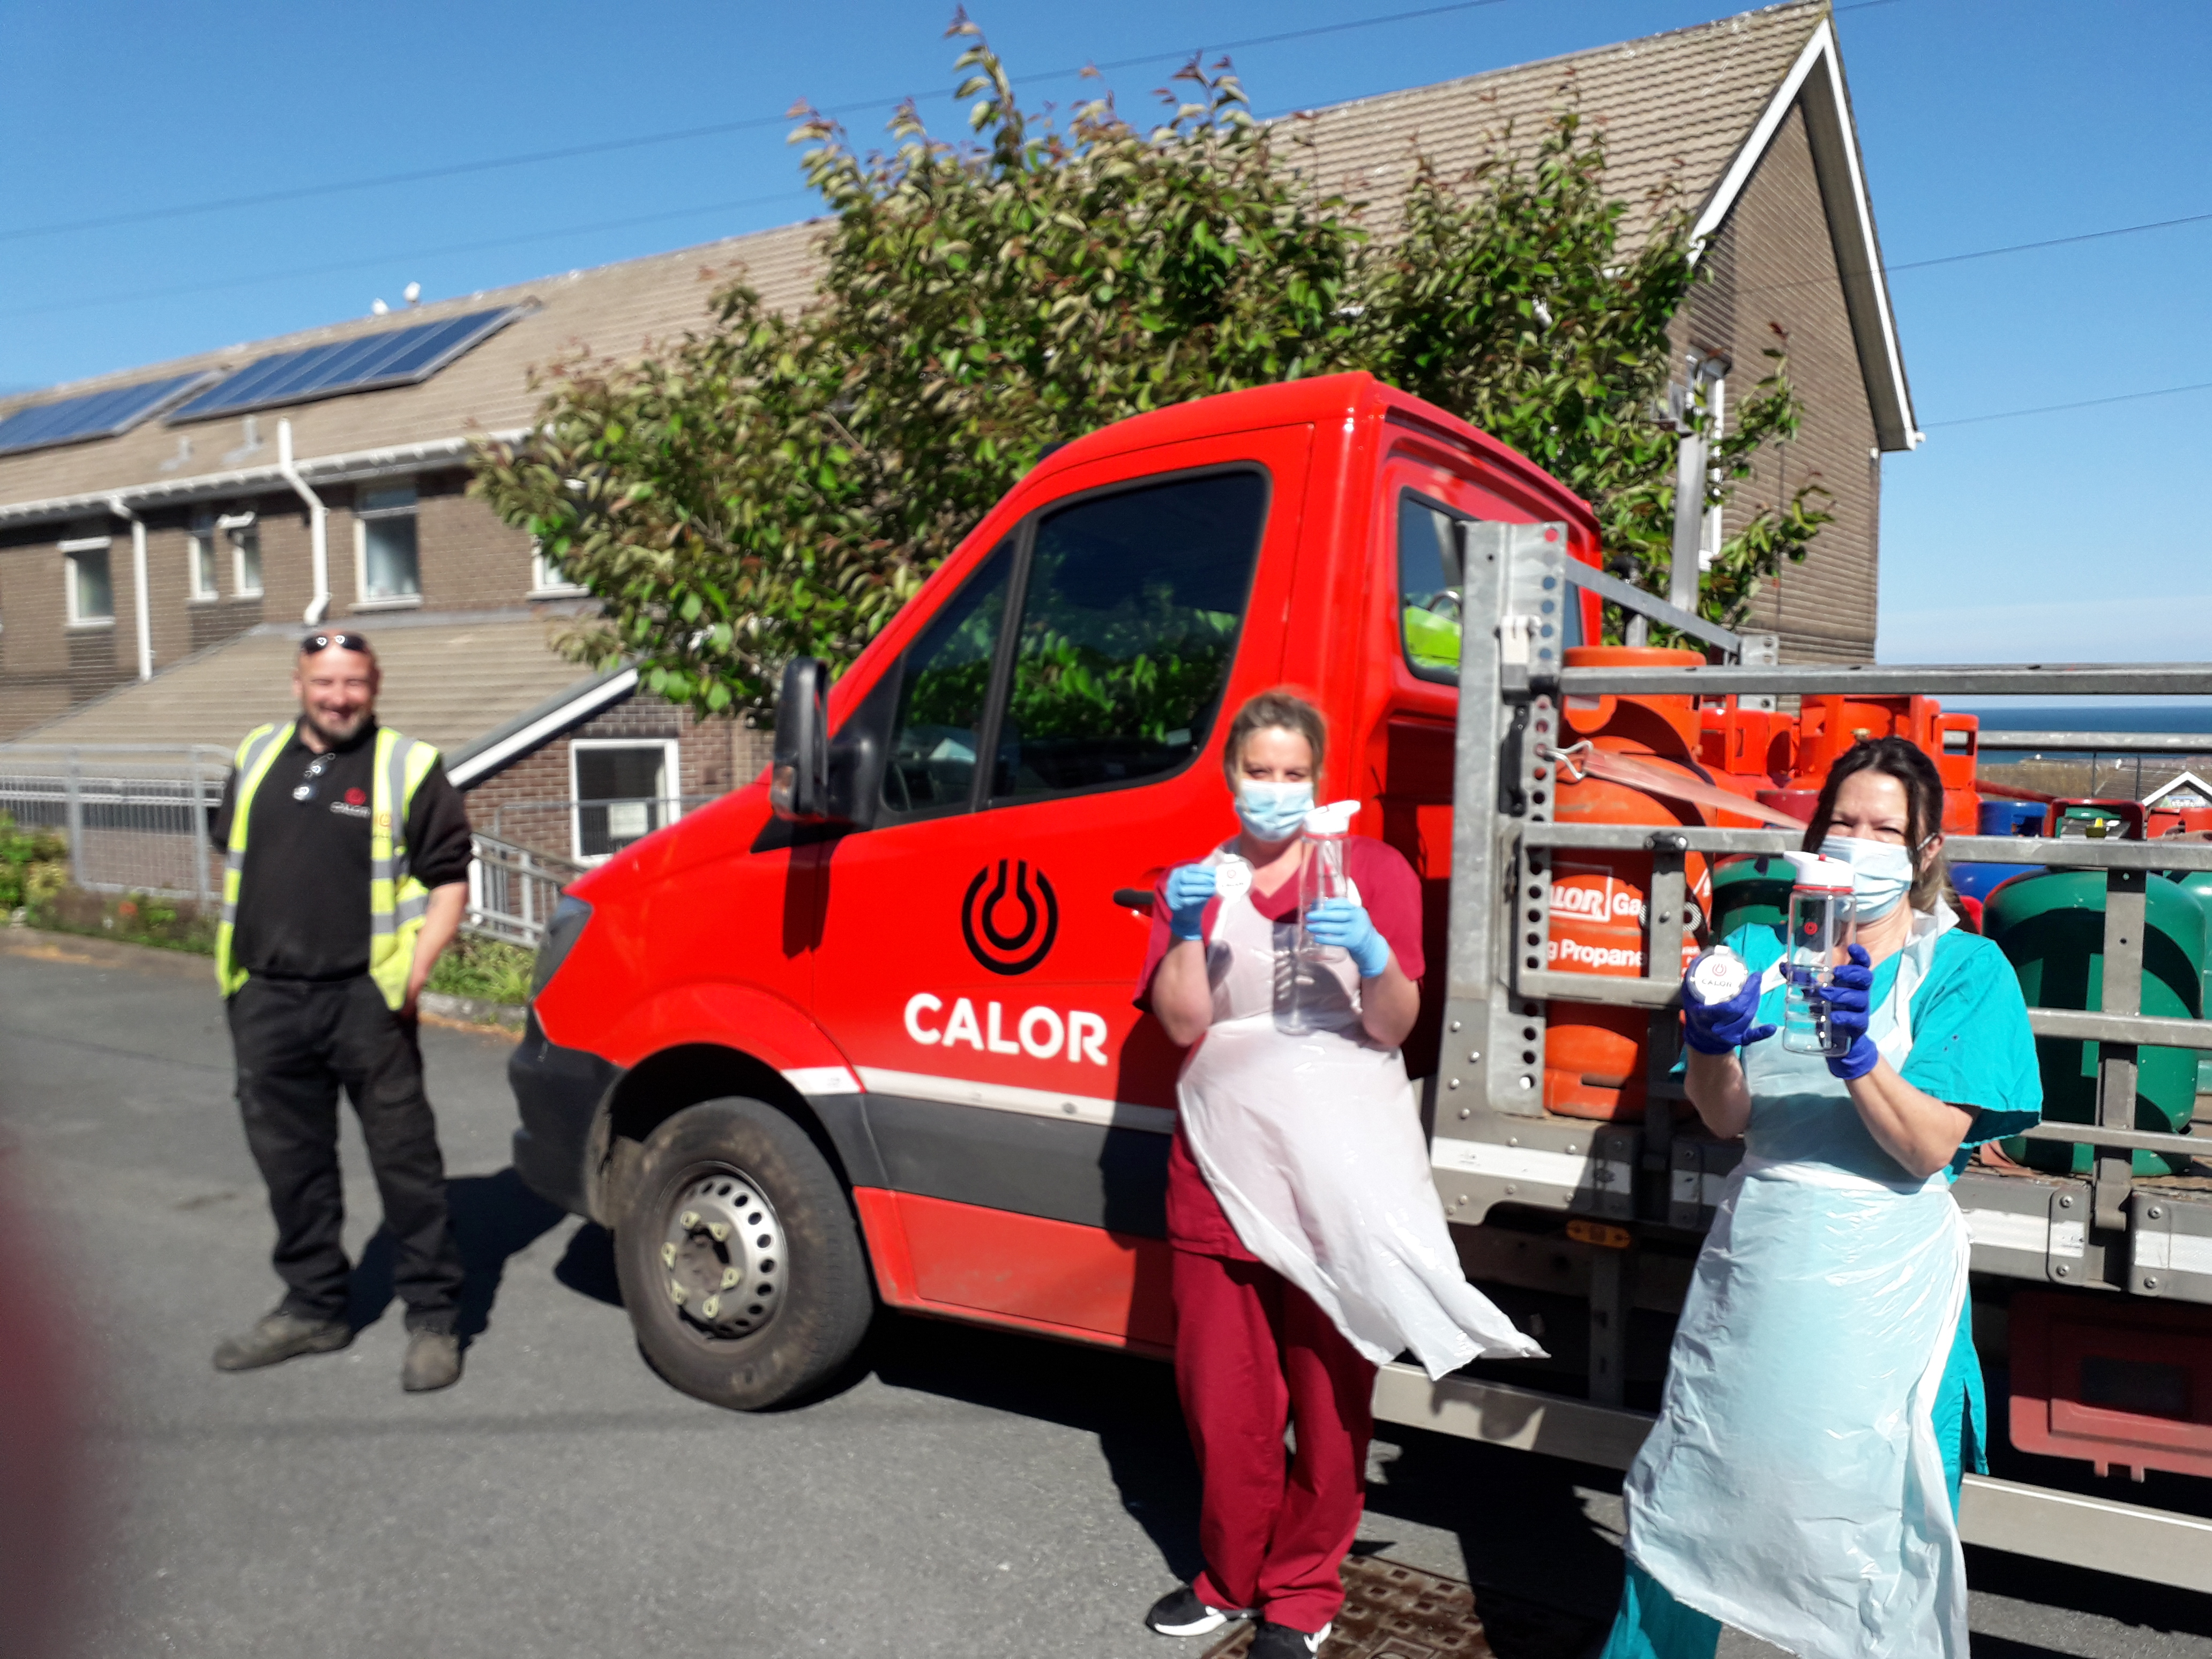 Calor supports care home workers